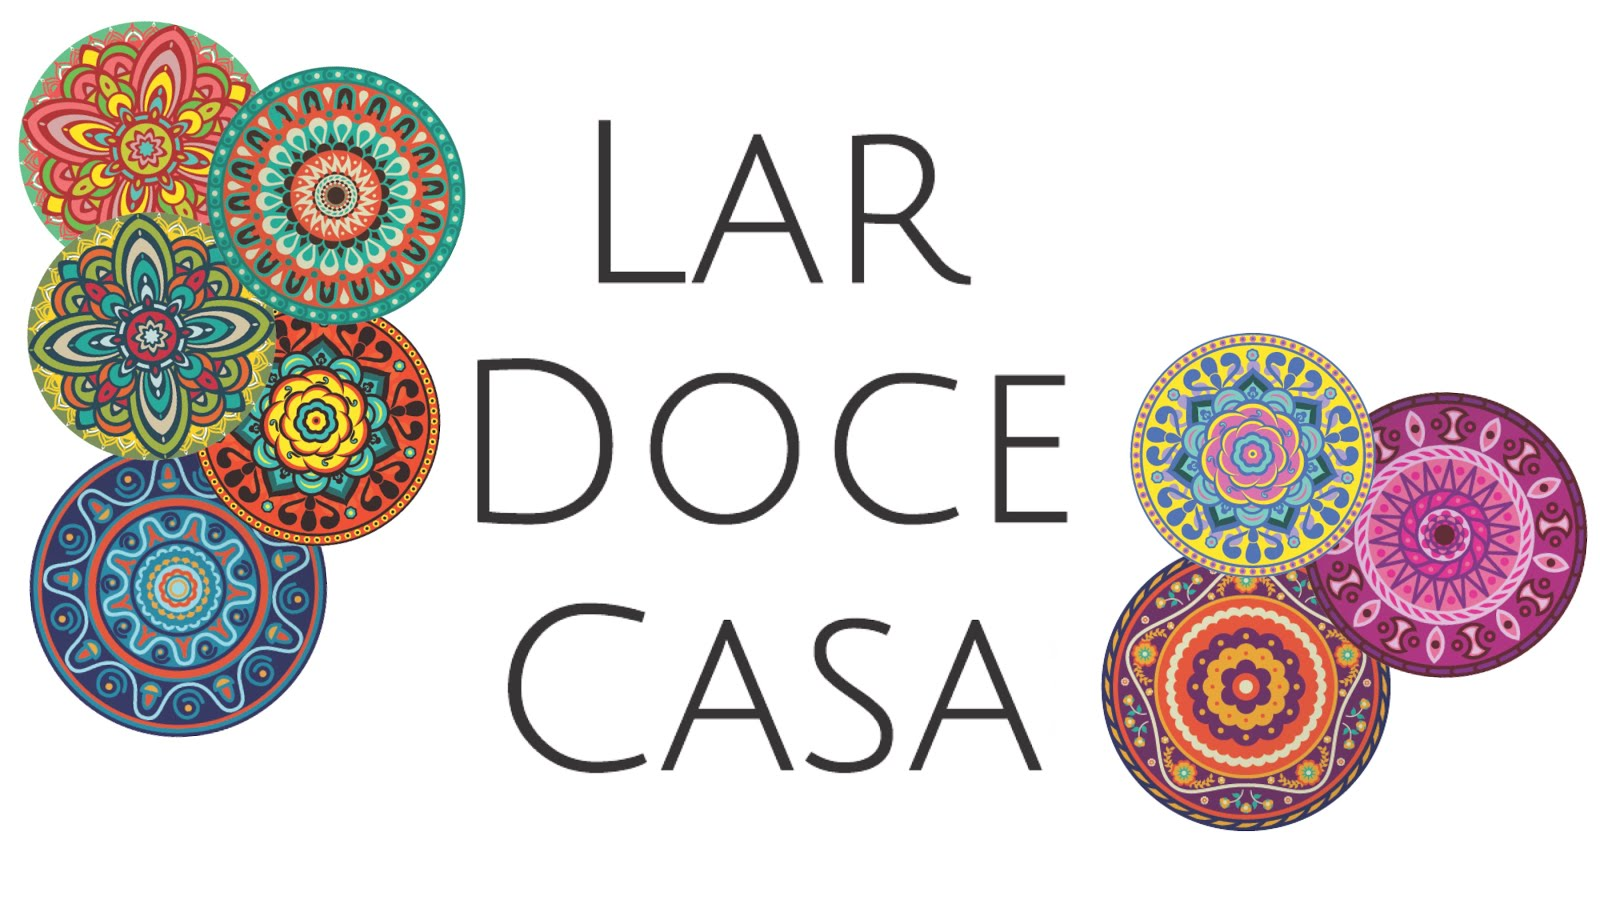 Lar Doce Casa